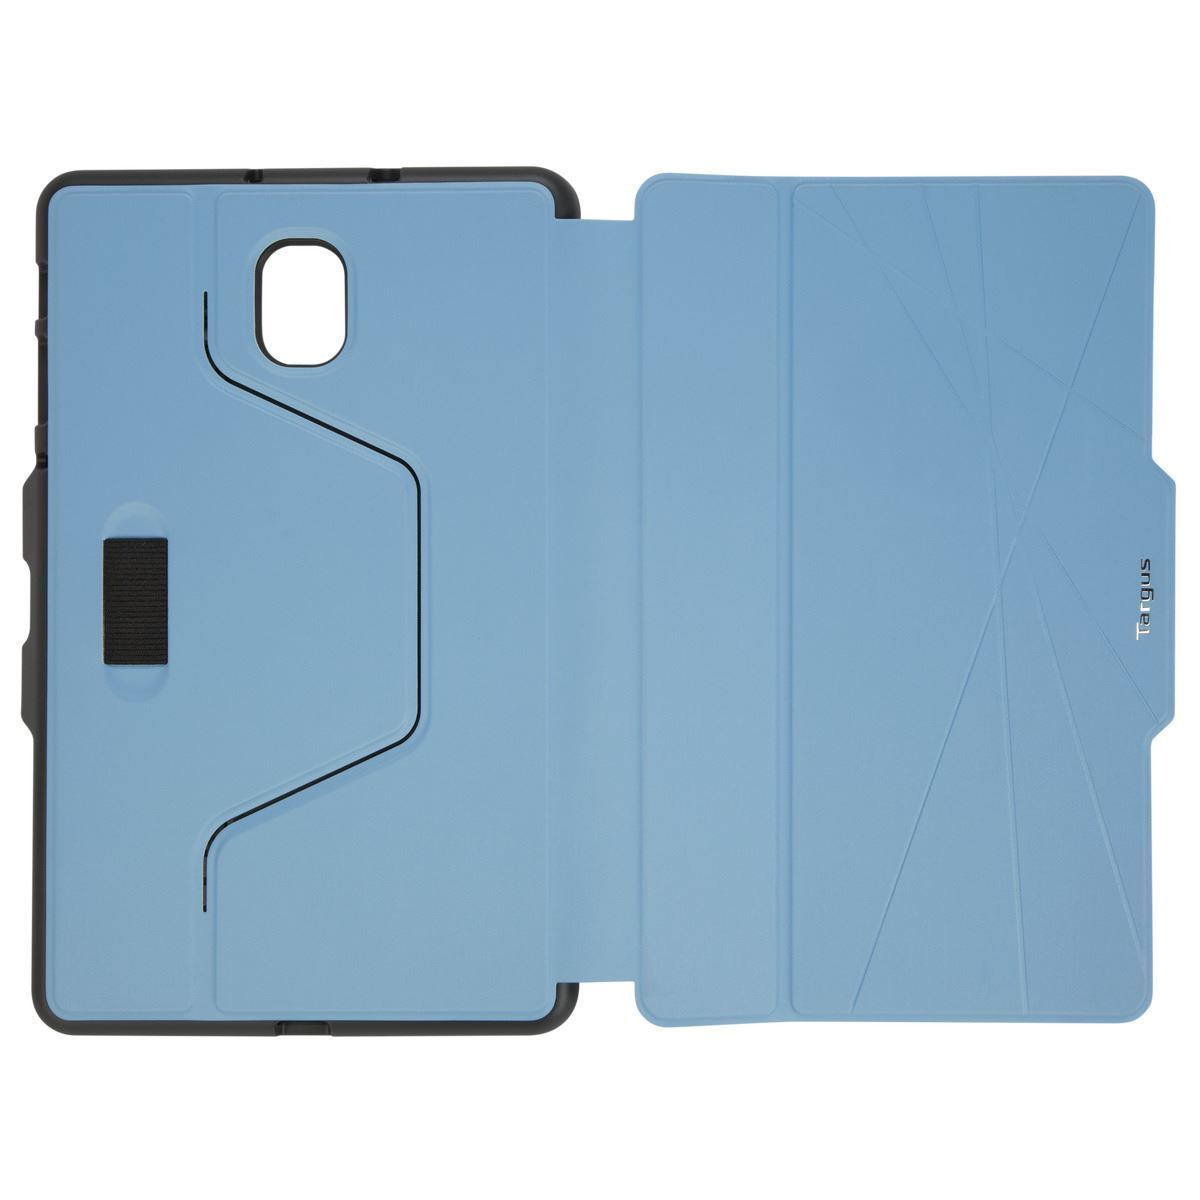 "Picture of Click-In case for Samsung Galaxy Tab A 10.5"" (2018) - Light Blue"